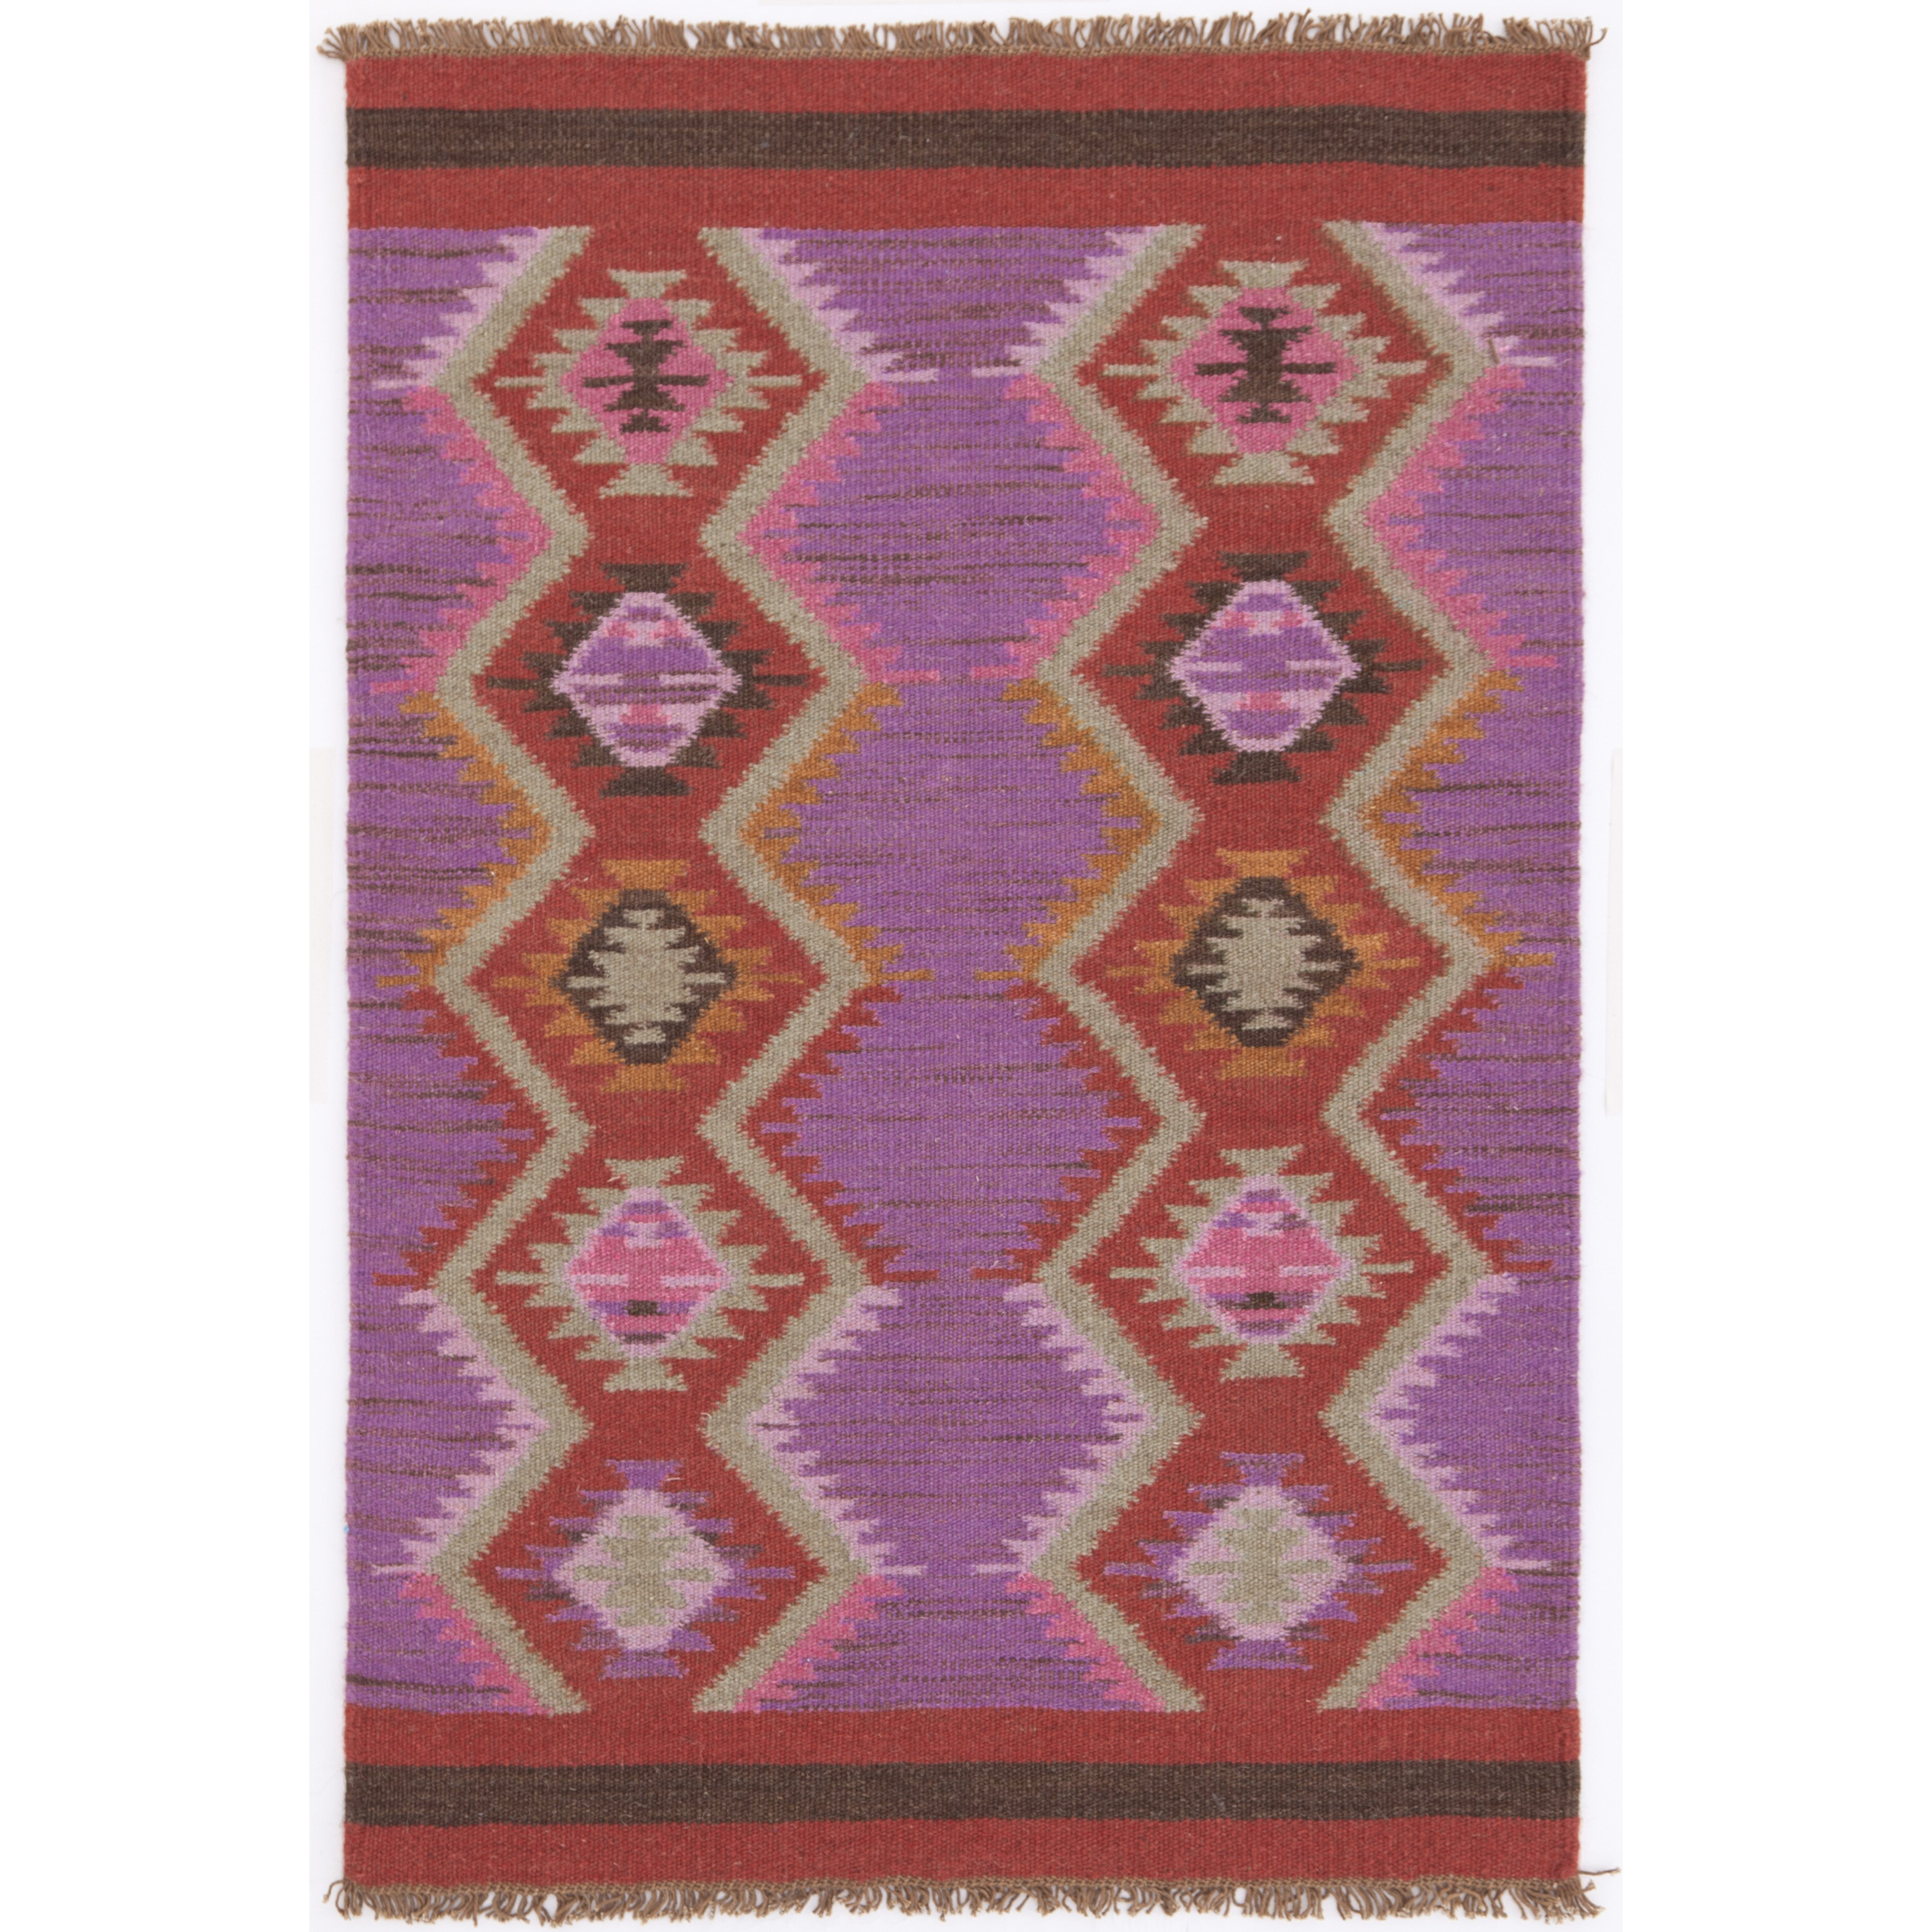 Dash and albert rugs hand woven purple red area rug for Dash and albert wool rugs